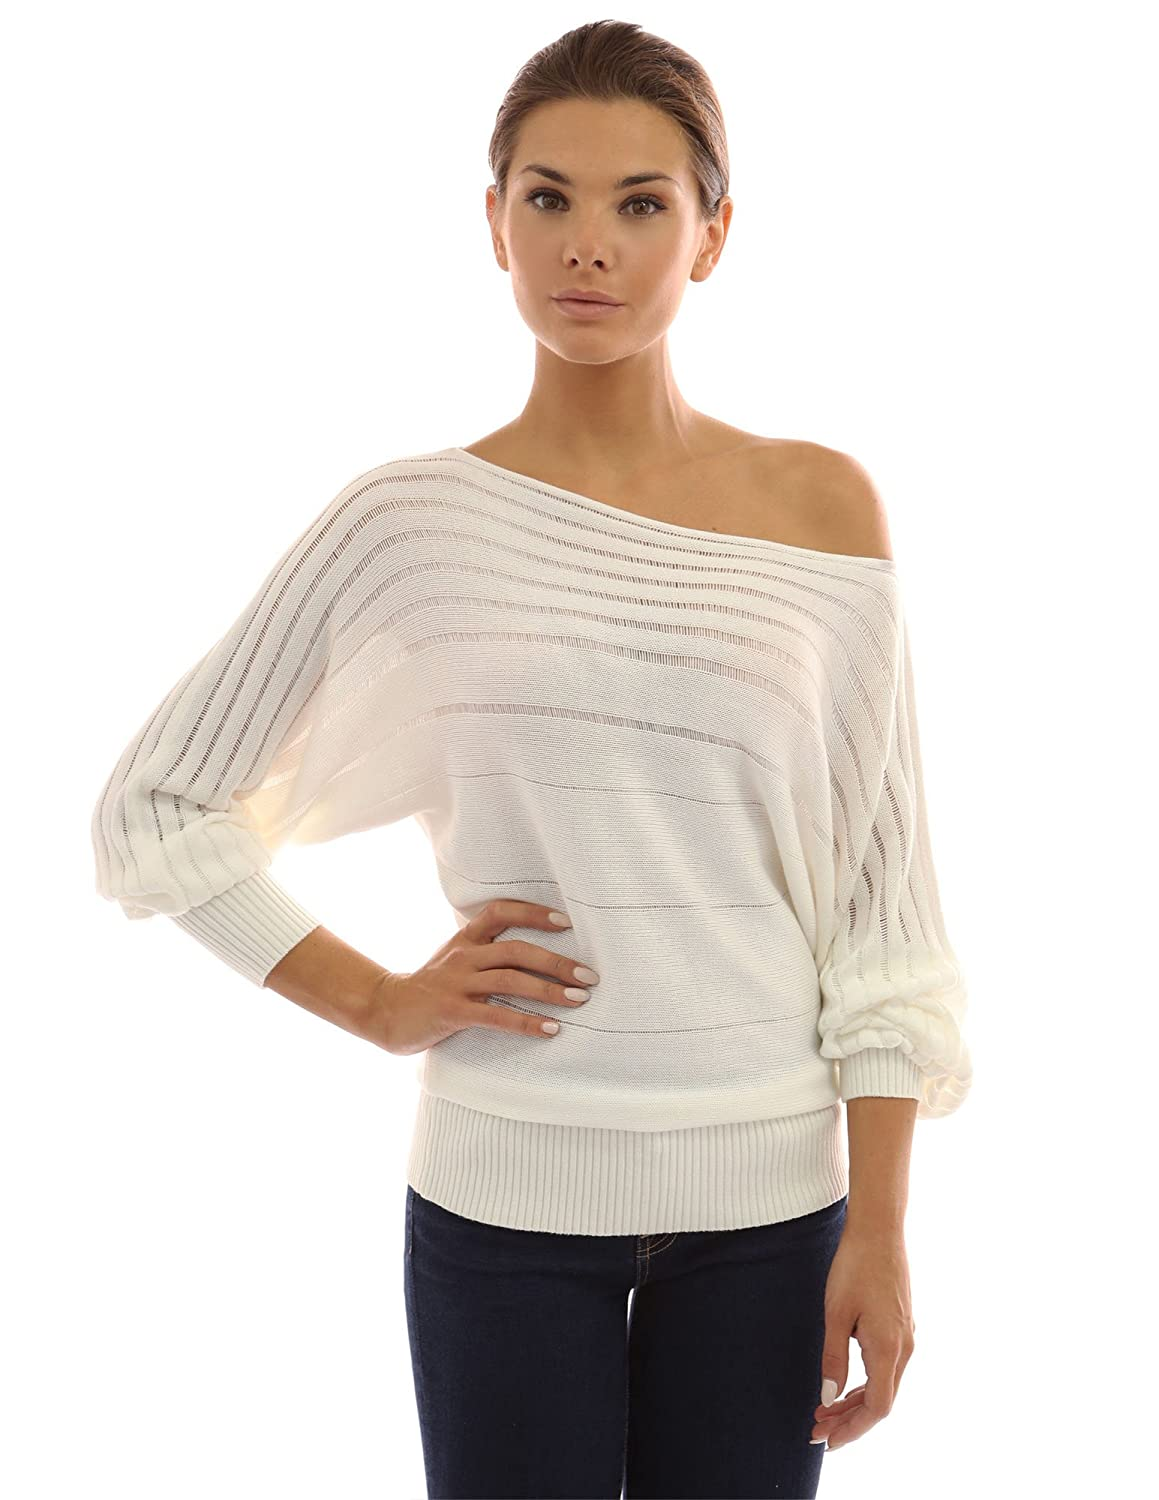 PattyBoutik Women's on / off one shoulder Semi-sheer Sweater at ...